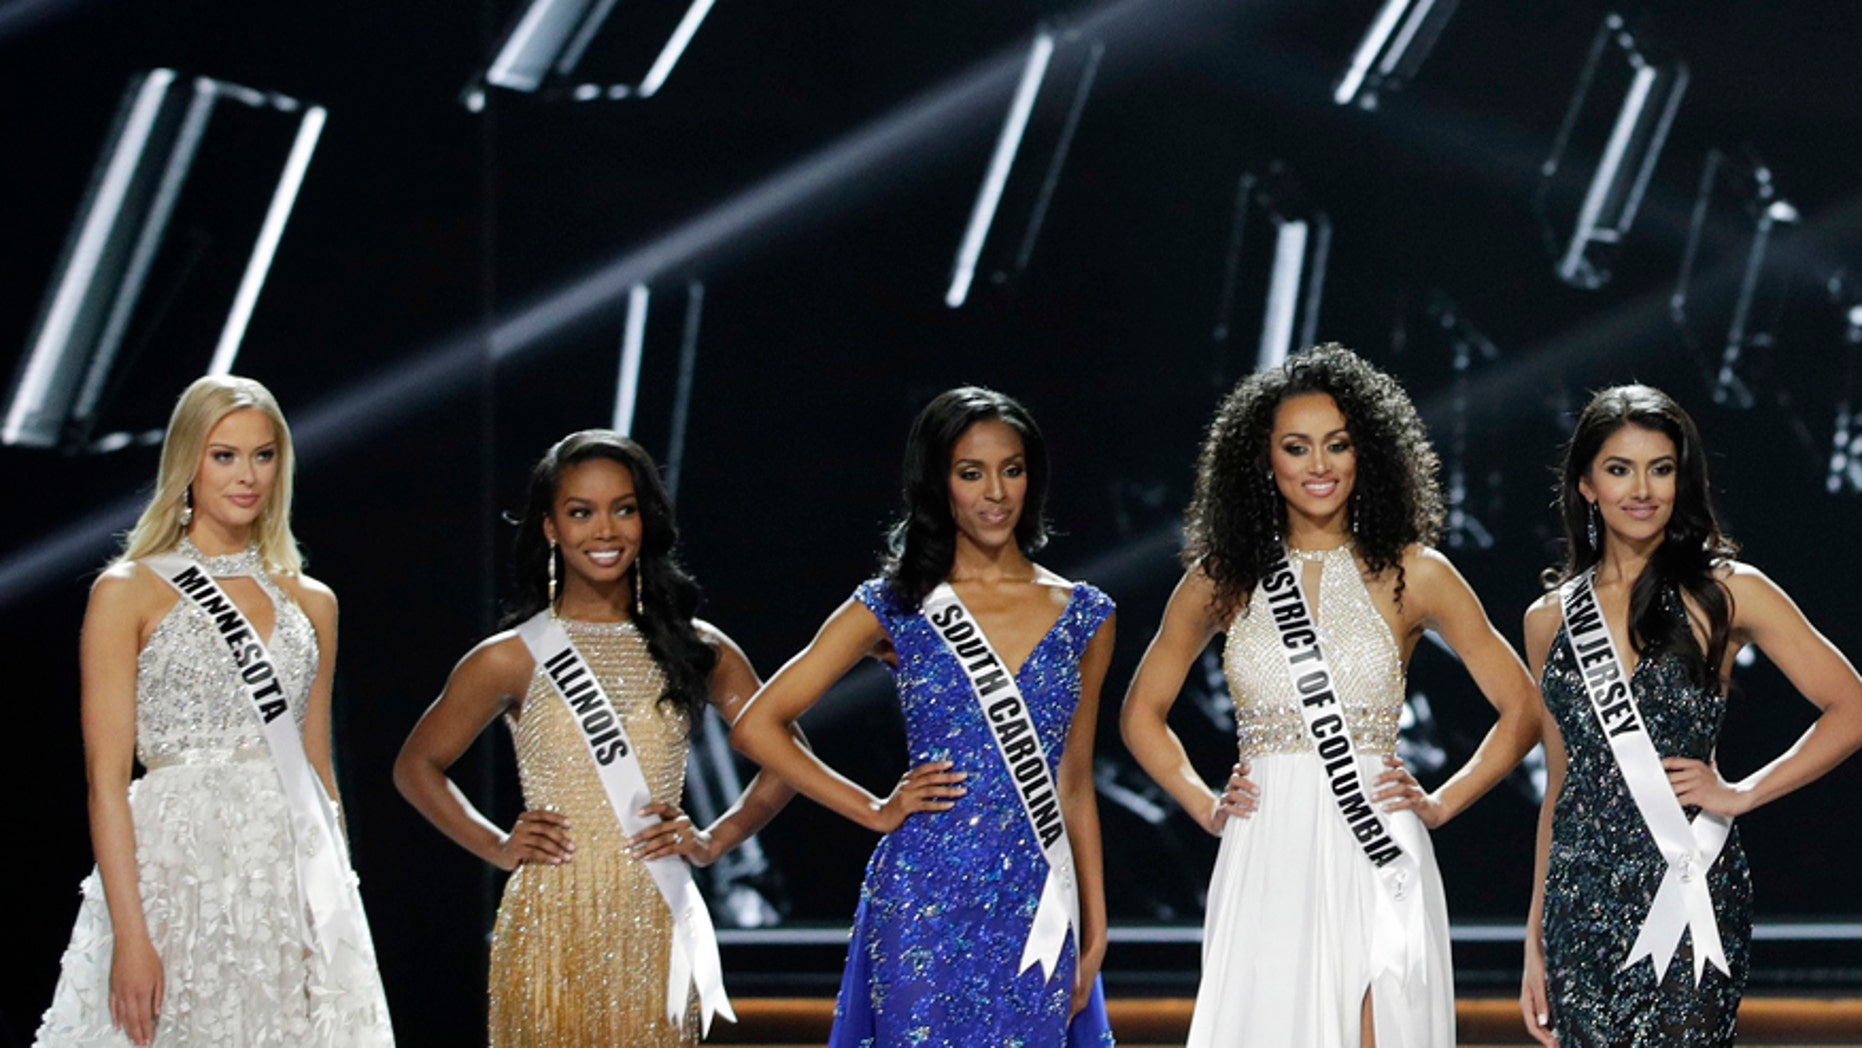 The final five contestants stand on stage during the Miss USA contest Sunday, May 14, 2017, in Las Vegas.